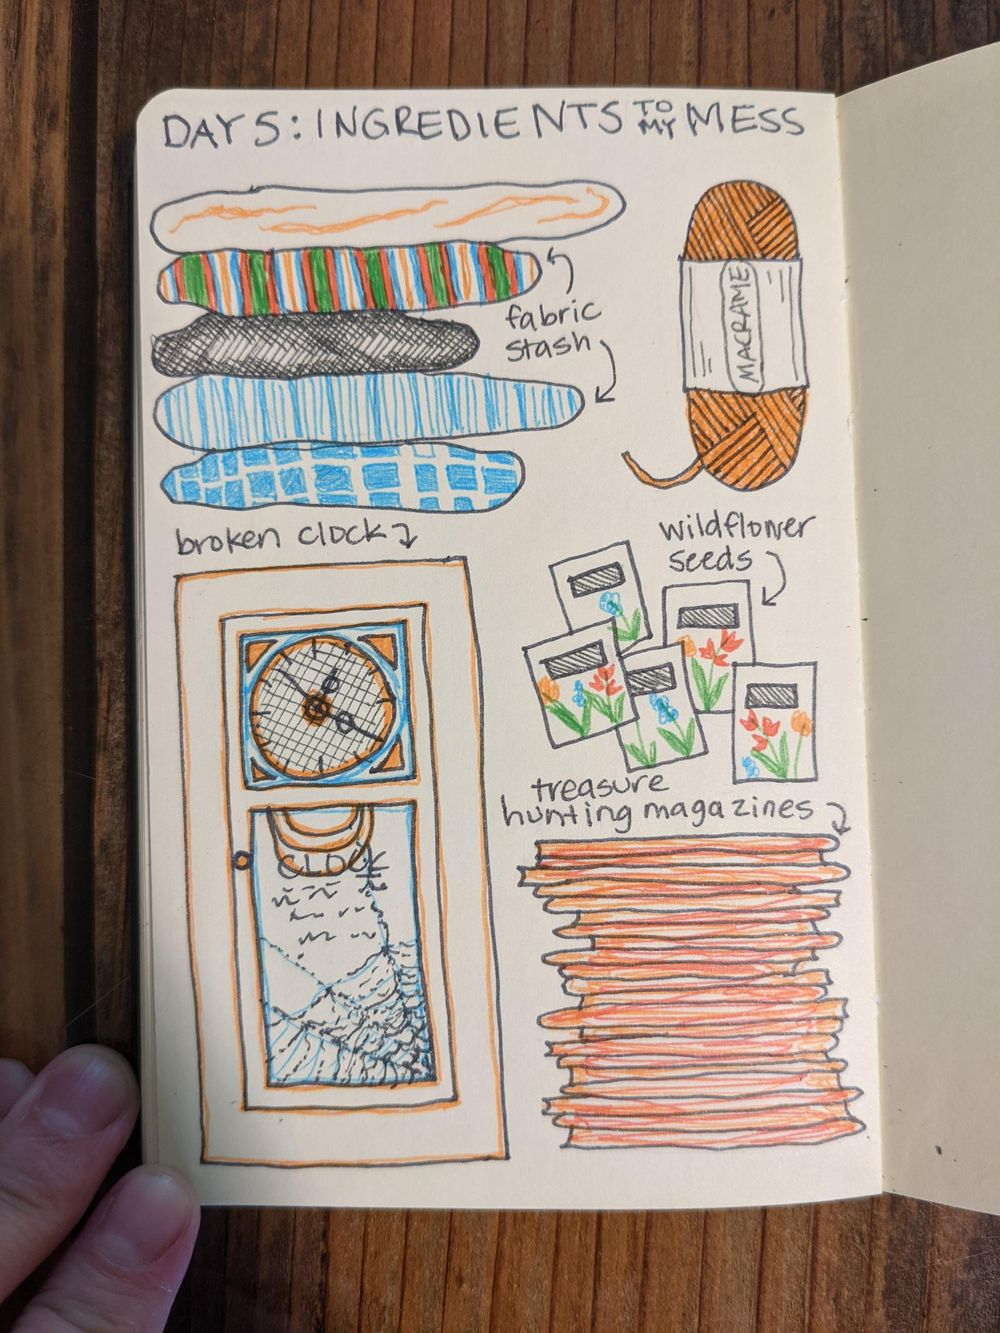 tessa (illustrated journaling 14-day) - image 5 - student project